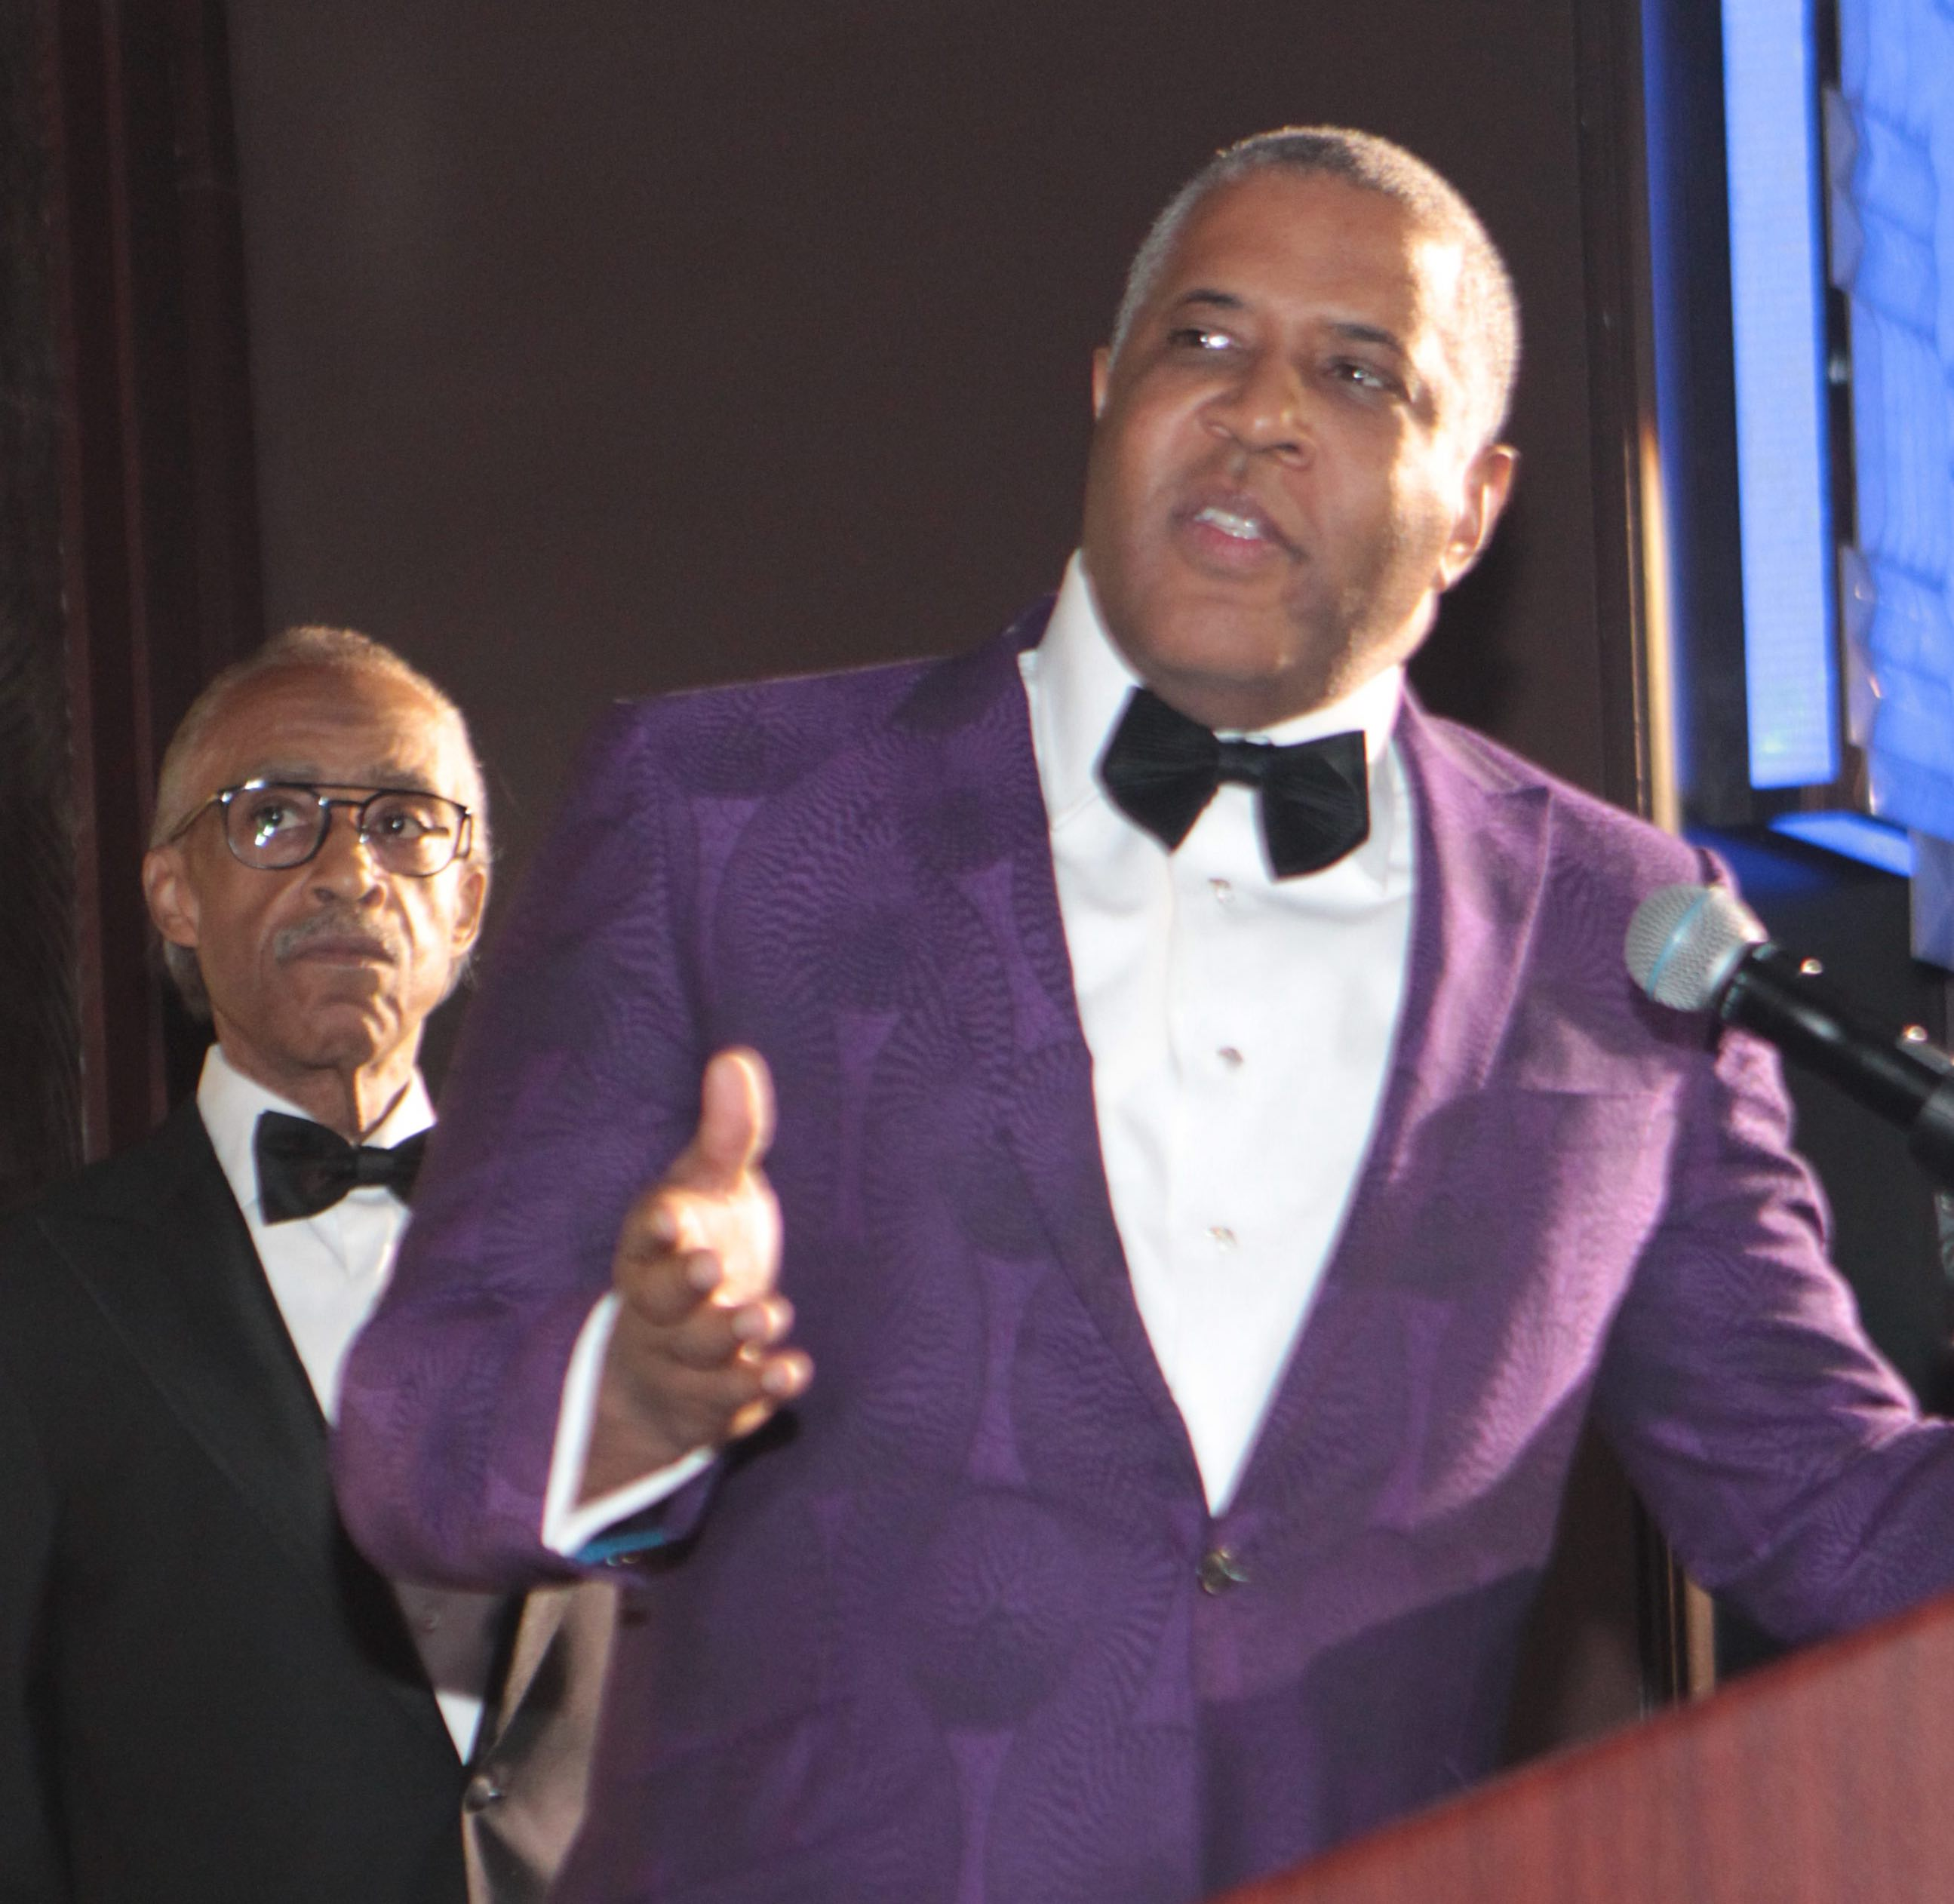 Robert F. Smith at the 2018 National Action Network Annual Convention